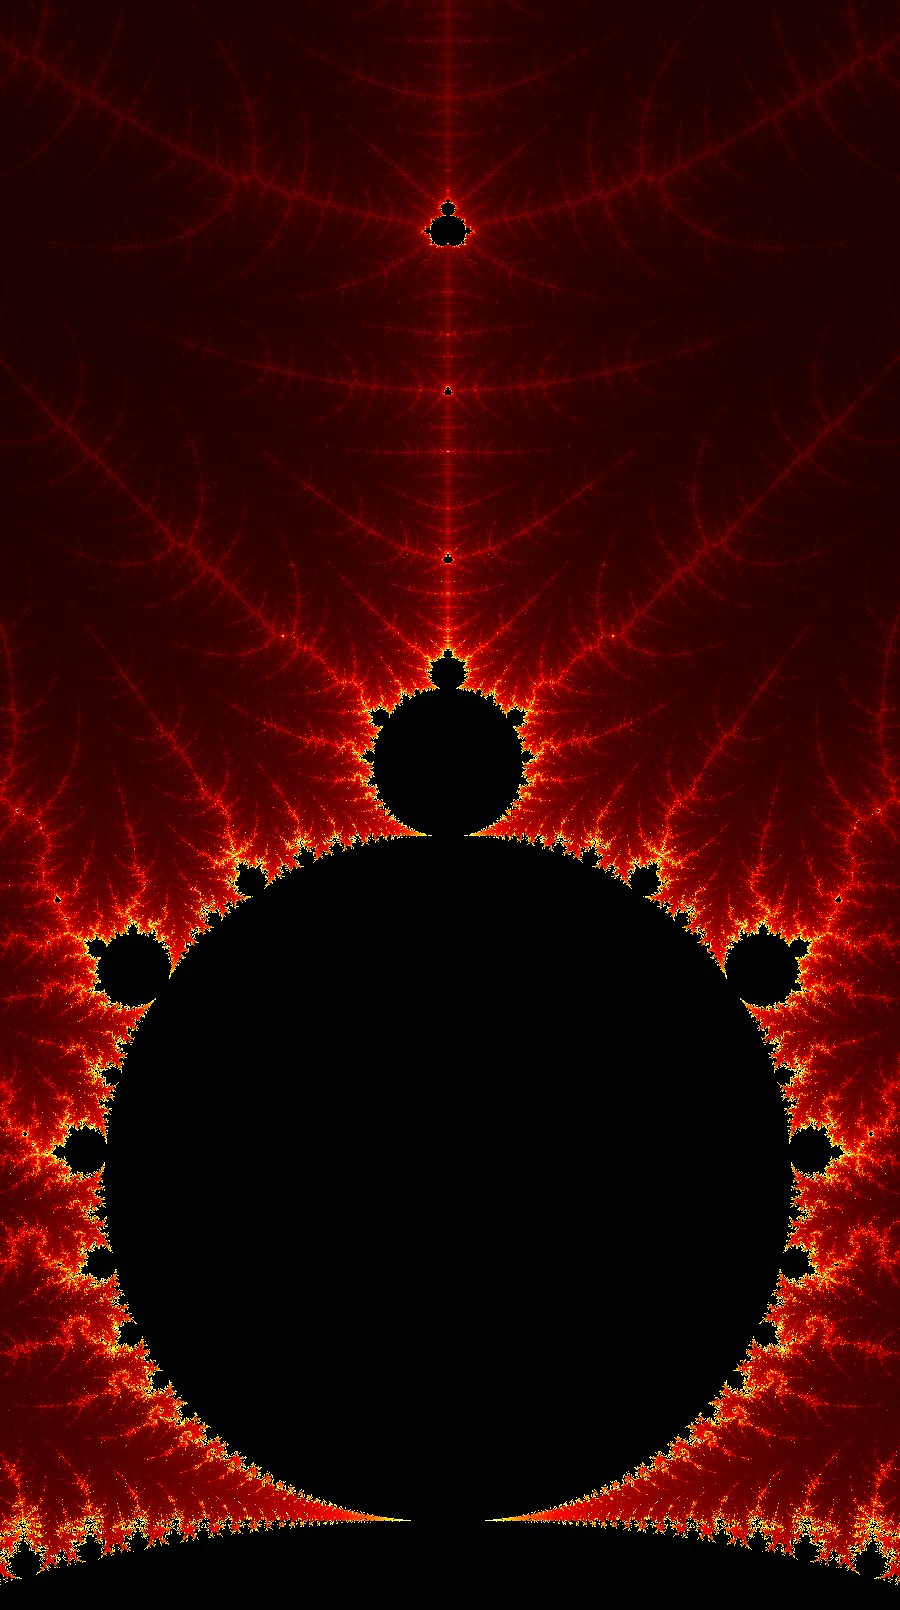 Mandelbrot Tree